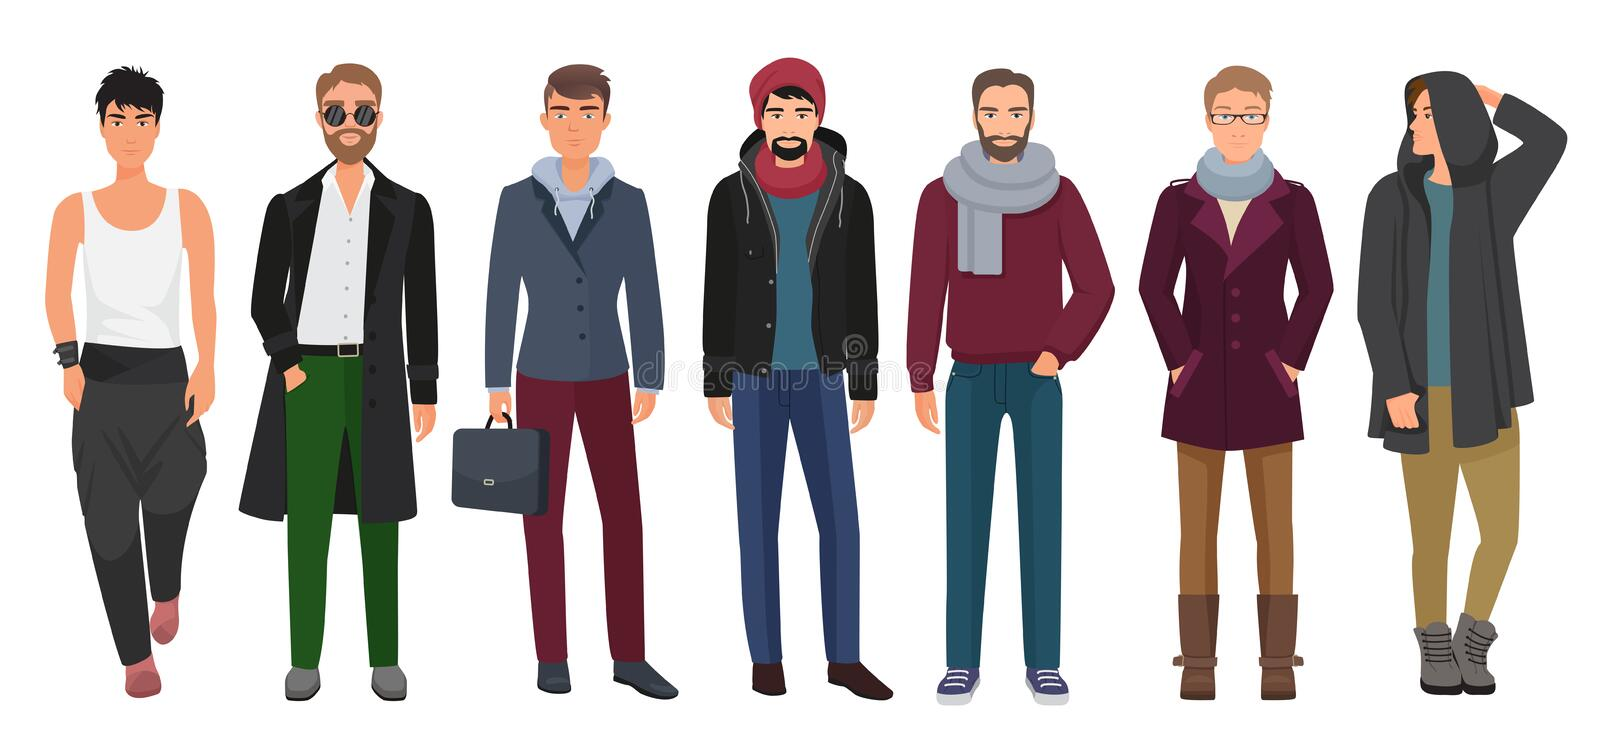 Handsome and stylish men set. Cartoon guys male characters in trendy fashion clothes. Vector illustration. stock illustration